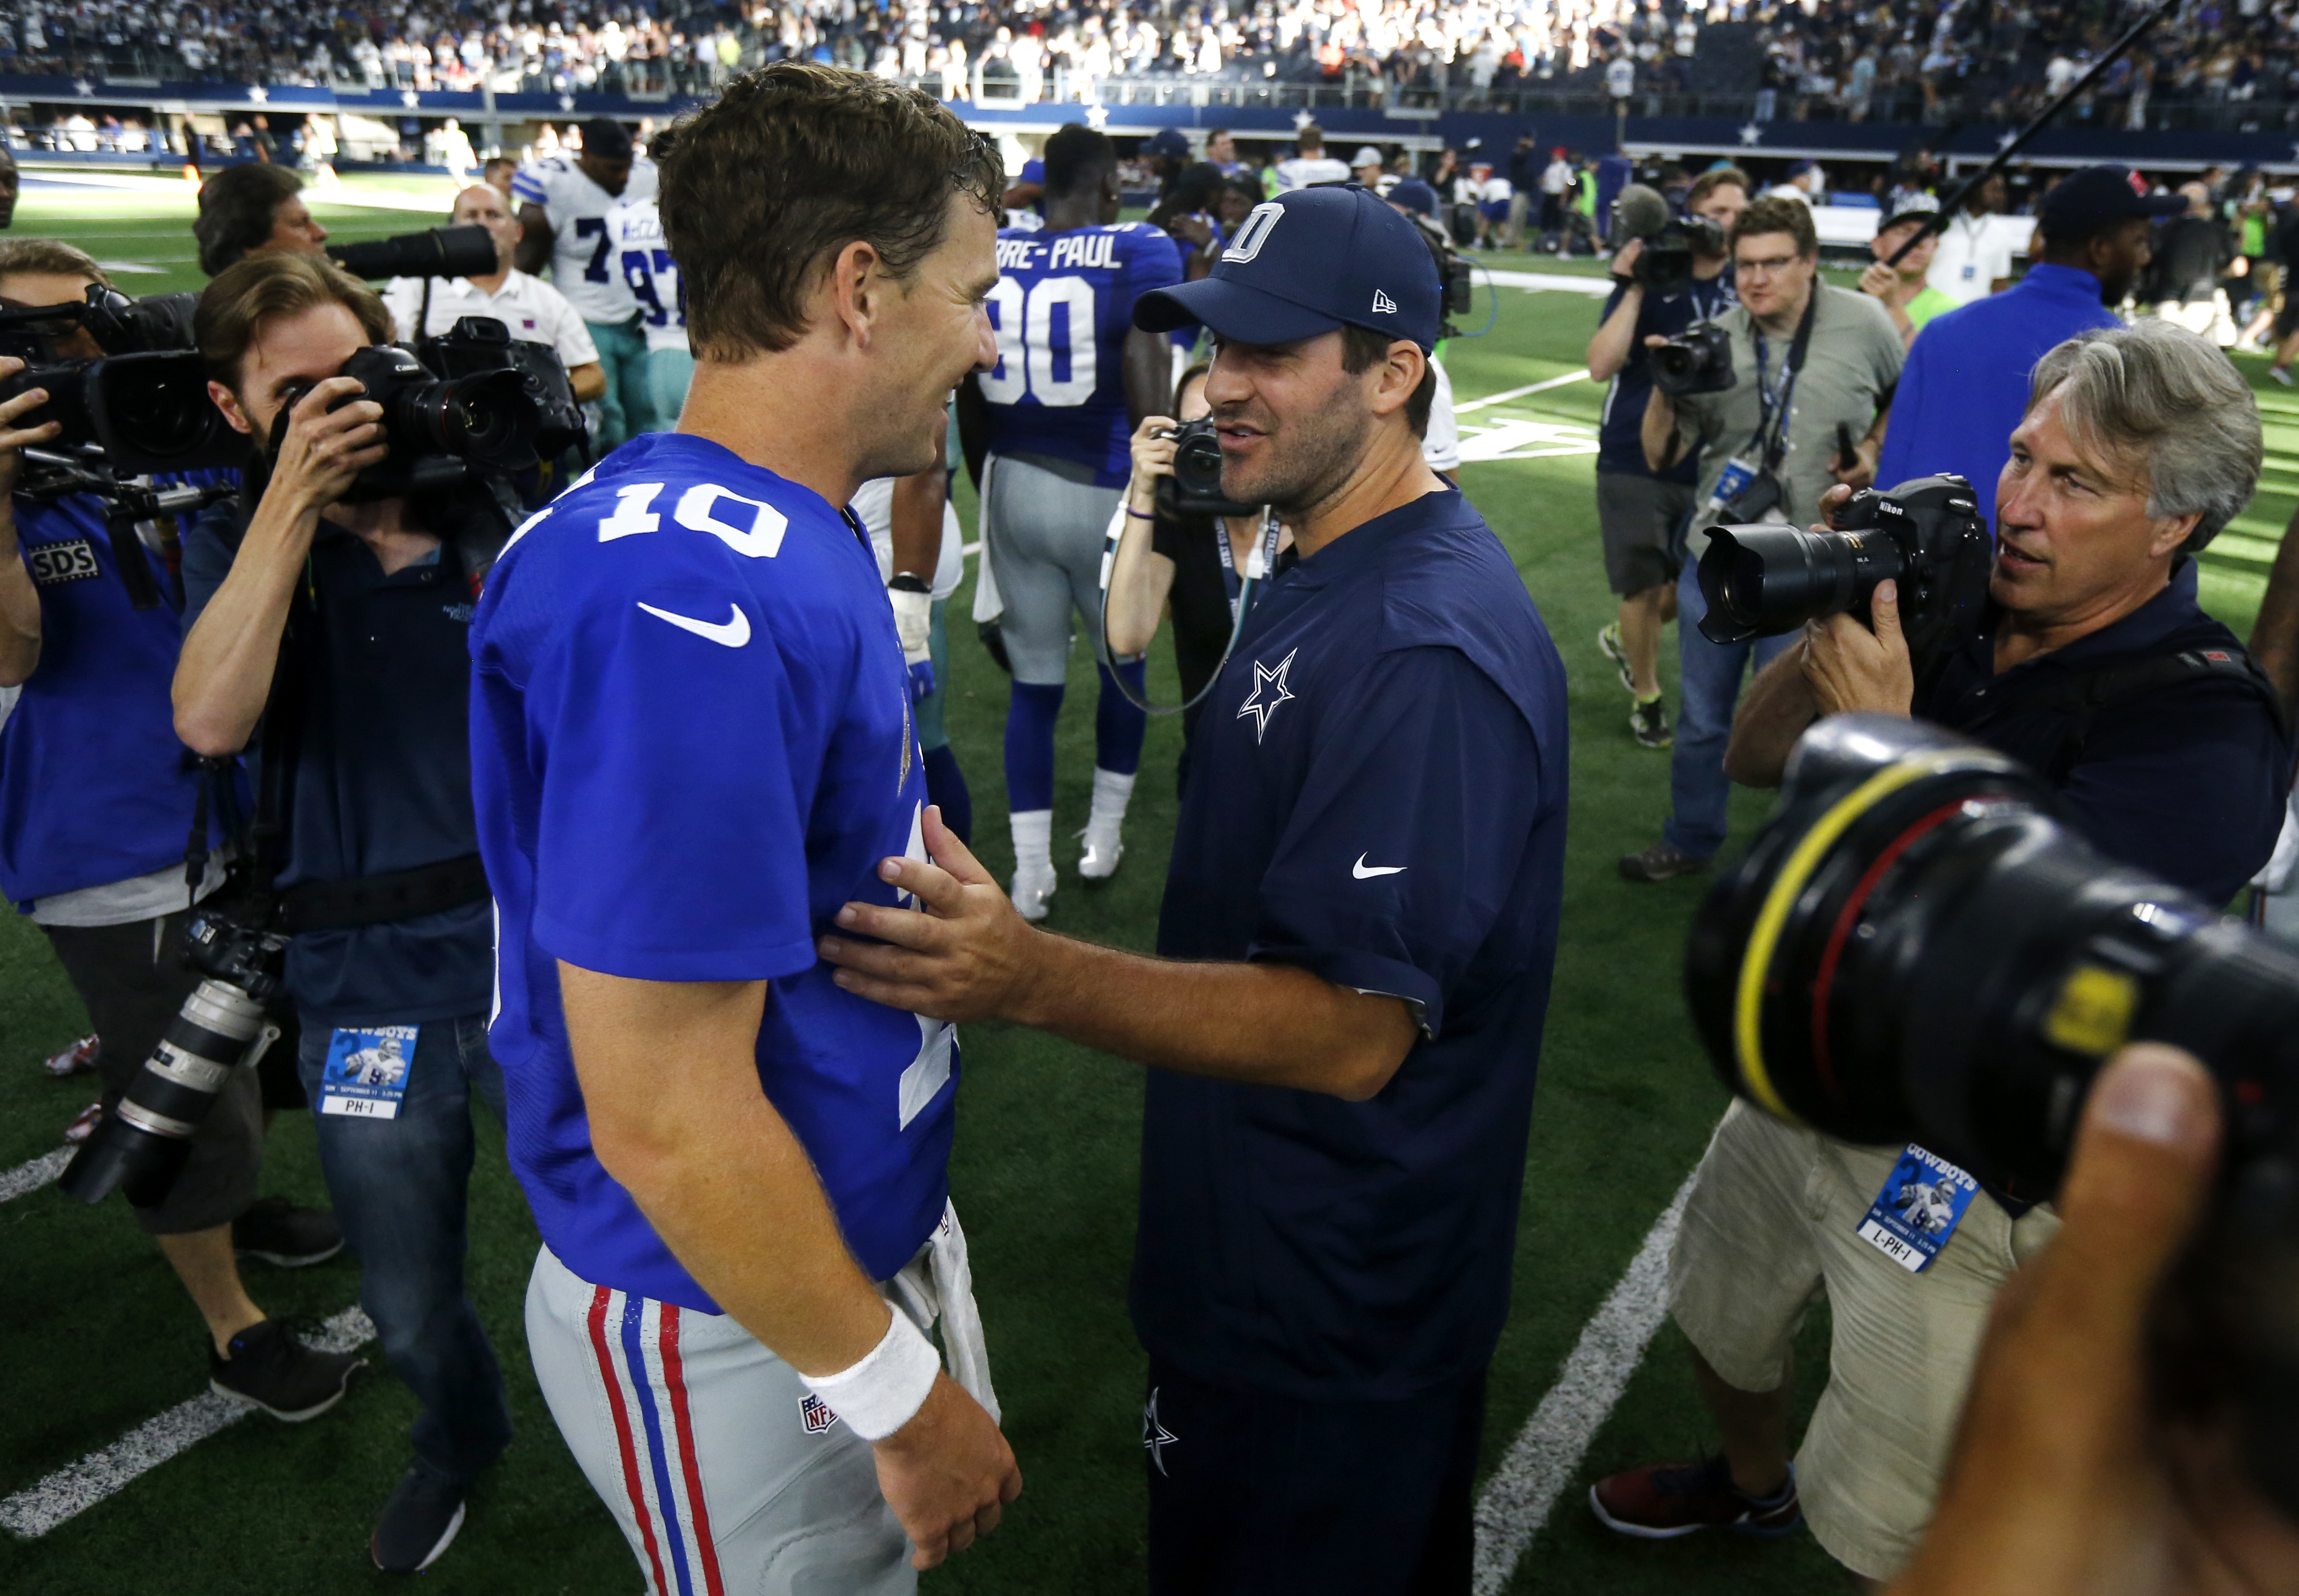 New York Giants quarterback Eli Manning (10) talks with Dallas Cowboys quarterback Tony Romo, right, after the Giants 20-19 win over the Cowboys in an NFL football game, Sunday Sept. 11, 2016, in Arlington, Texas. (AP Photo/Michael Ainsworth)